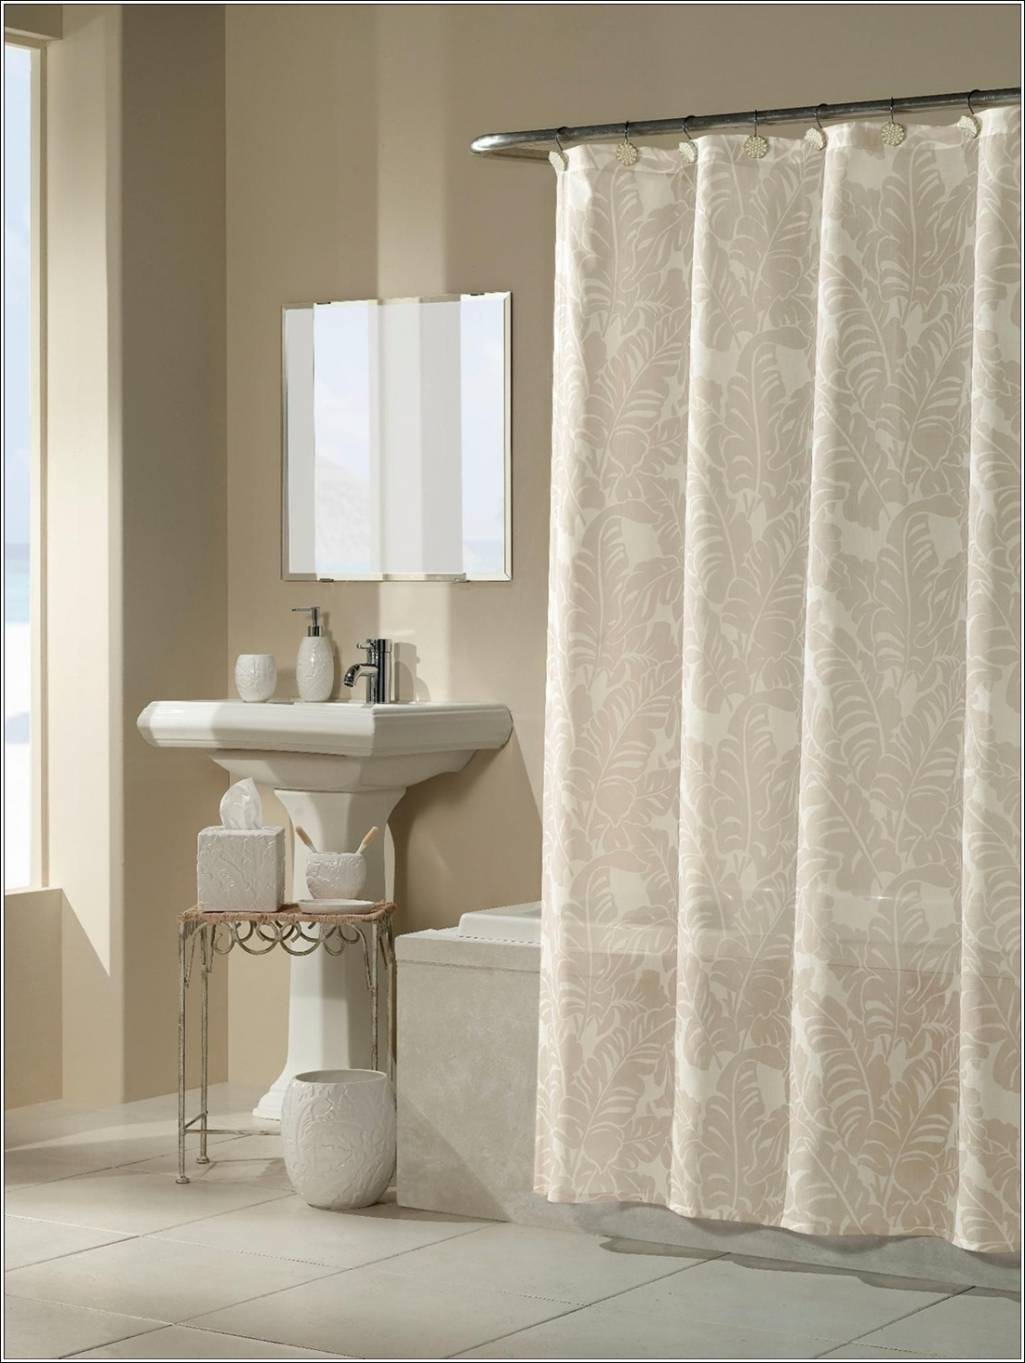 Classy Shower Curtains For Your Bathroom - Shower curtains for bathroom